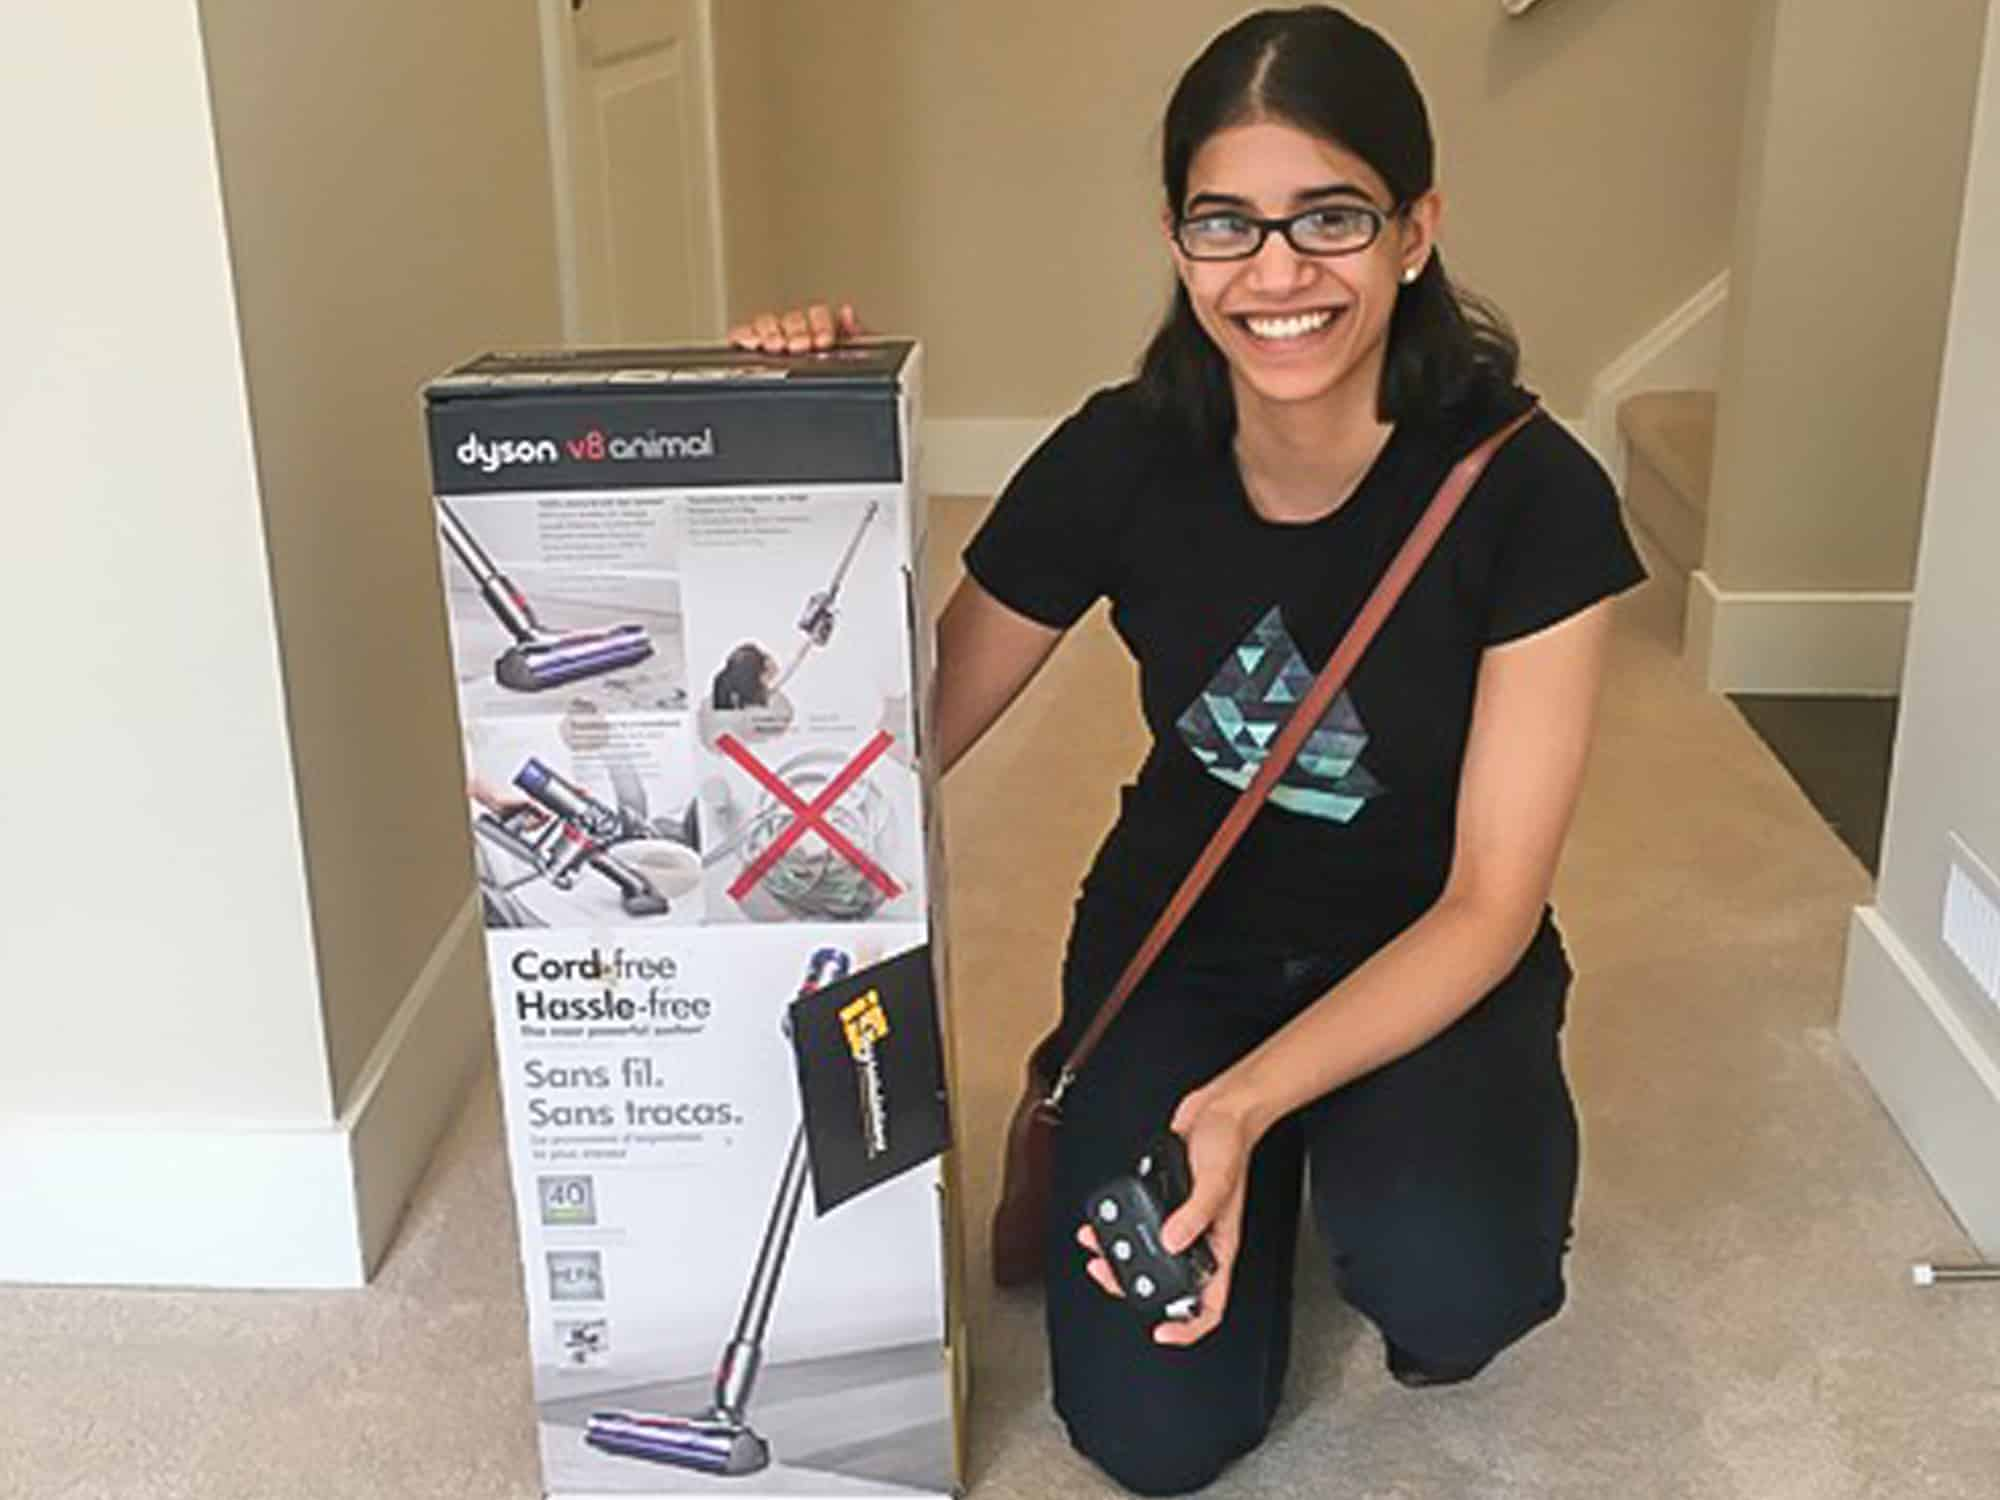 New Home owner with Dyson vacuum